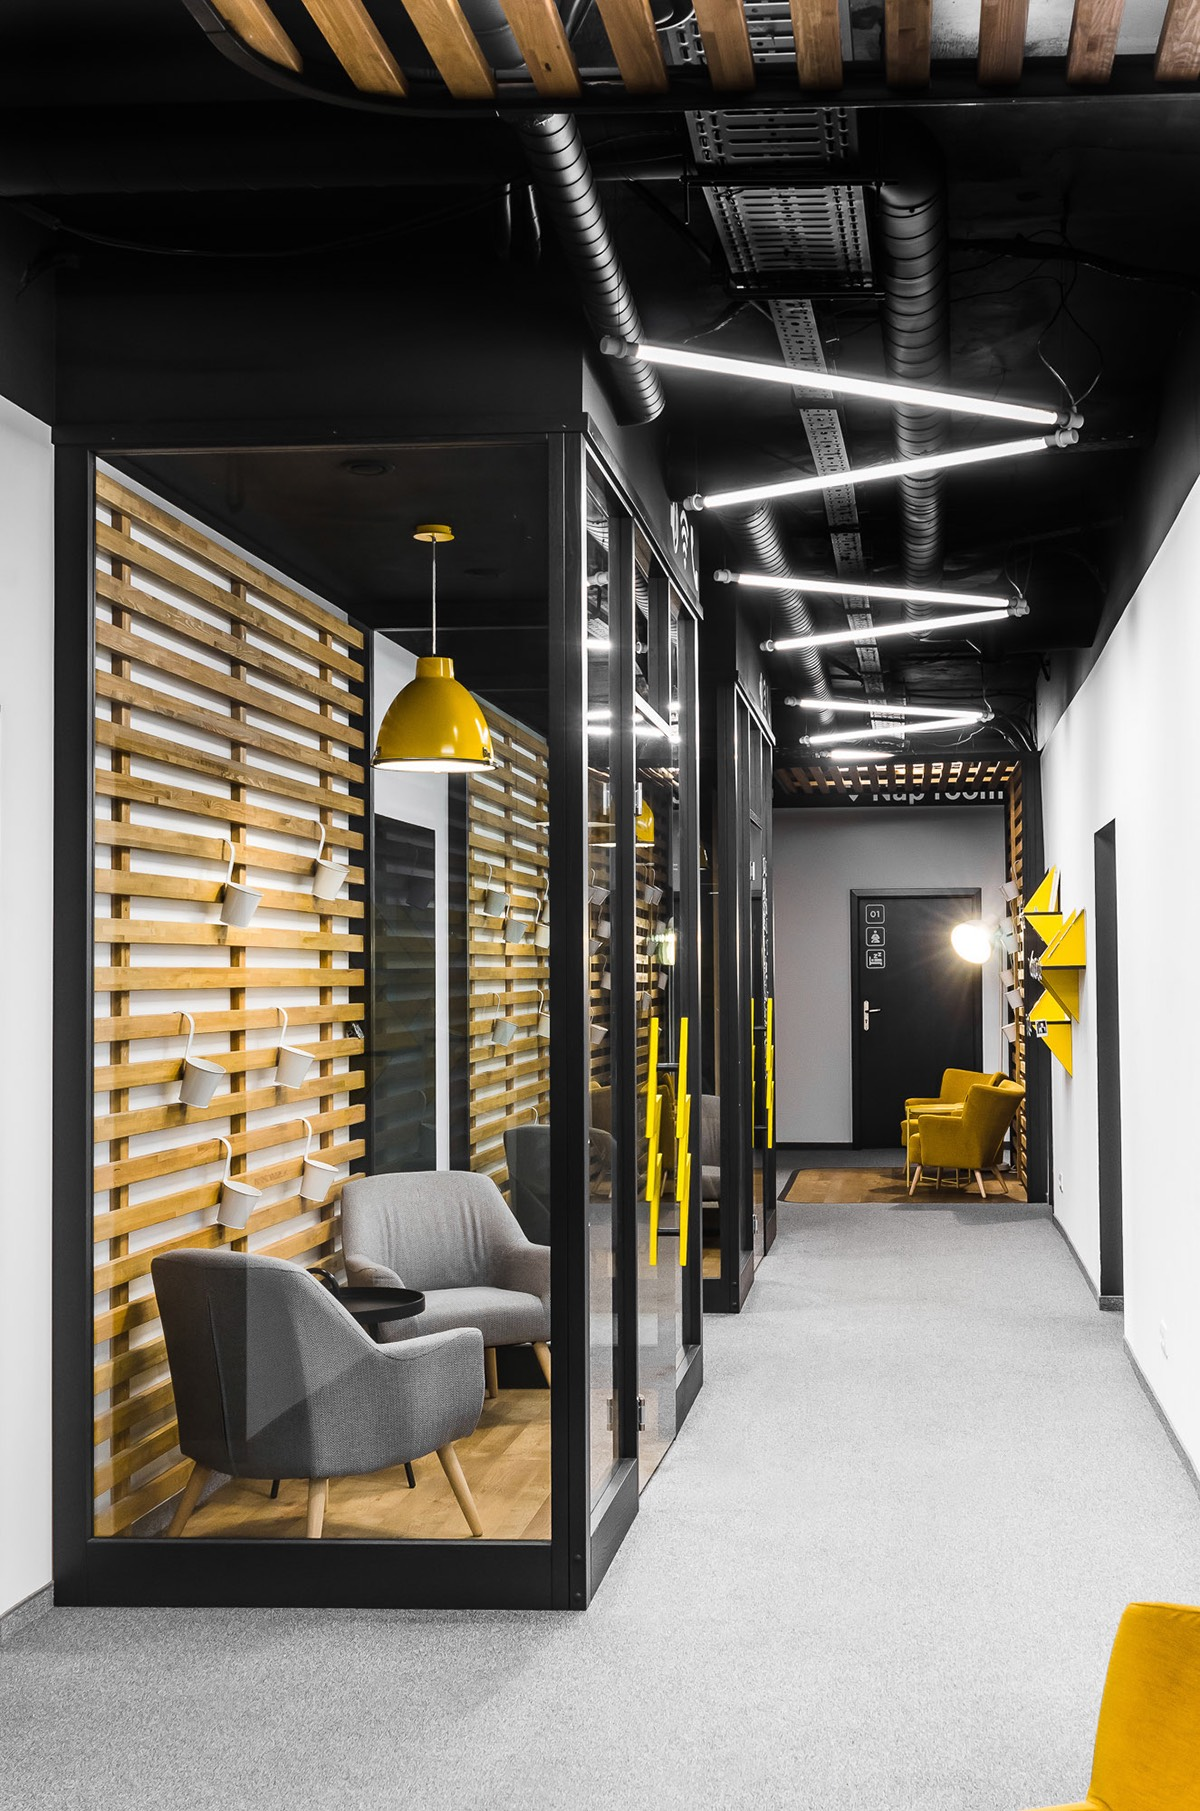 Inside Droids On Roids' Cool Wroclaw Office